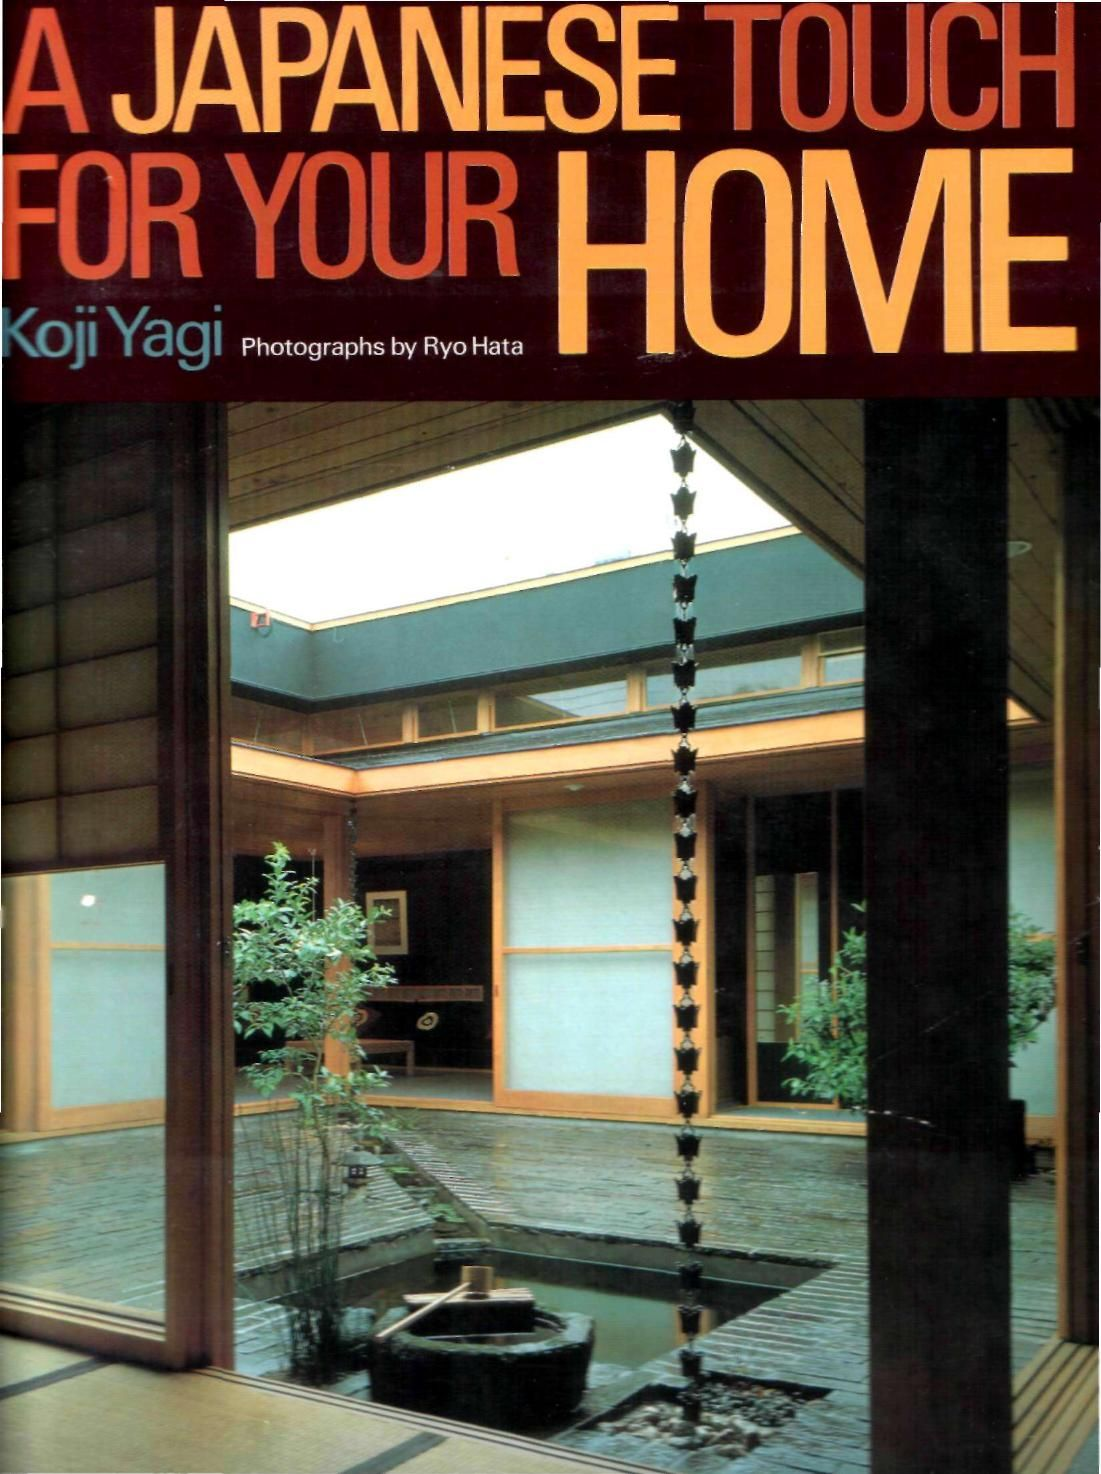 A Practical Guide To Introducing Japanese Design Elements Into The Western Home 120 Colour Photos And 200 Black White Floor Plans Illustrate